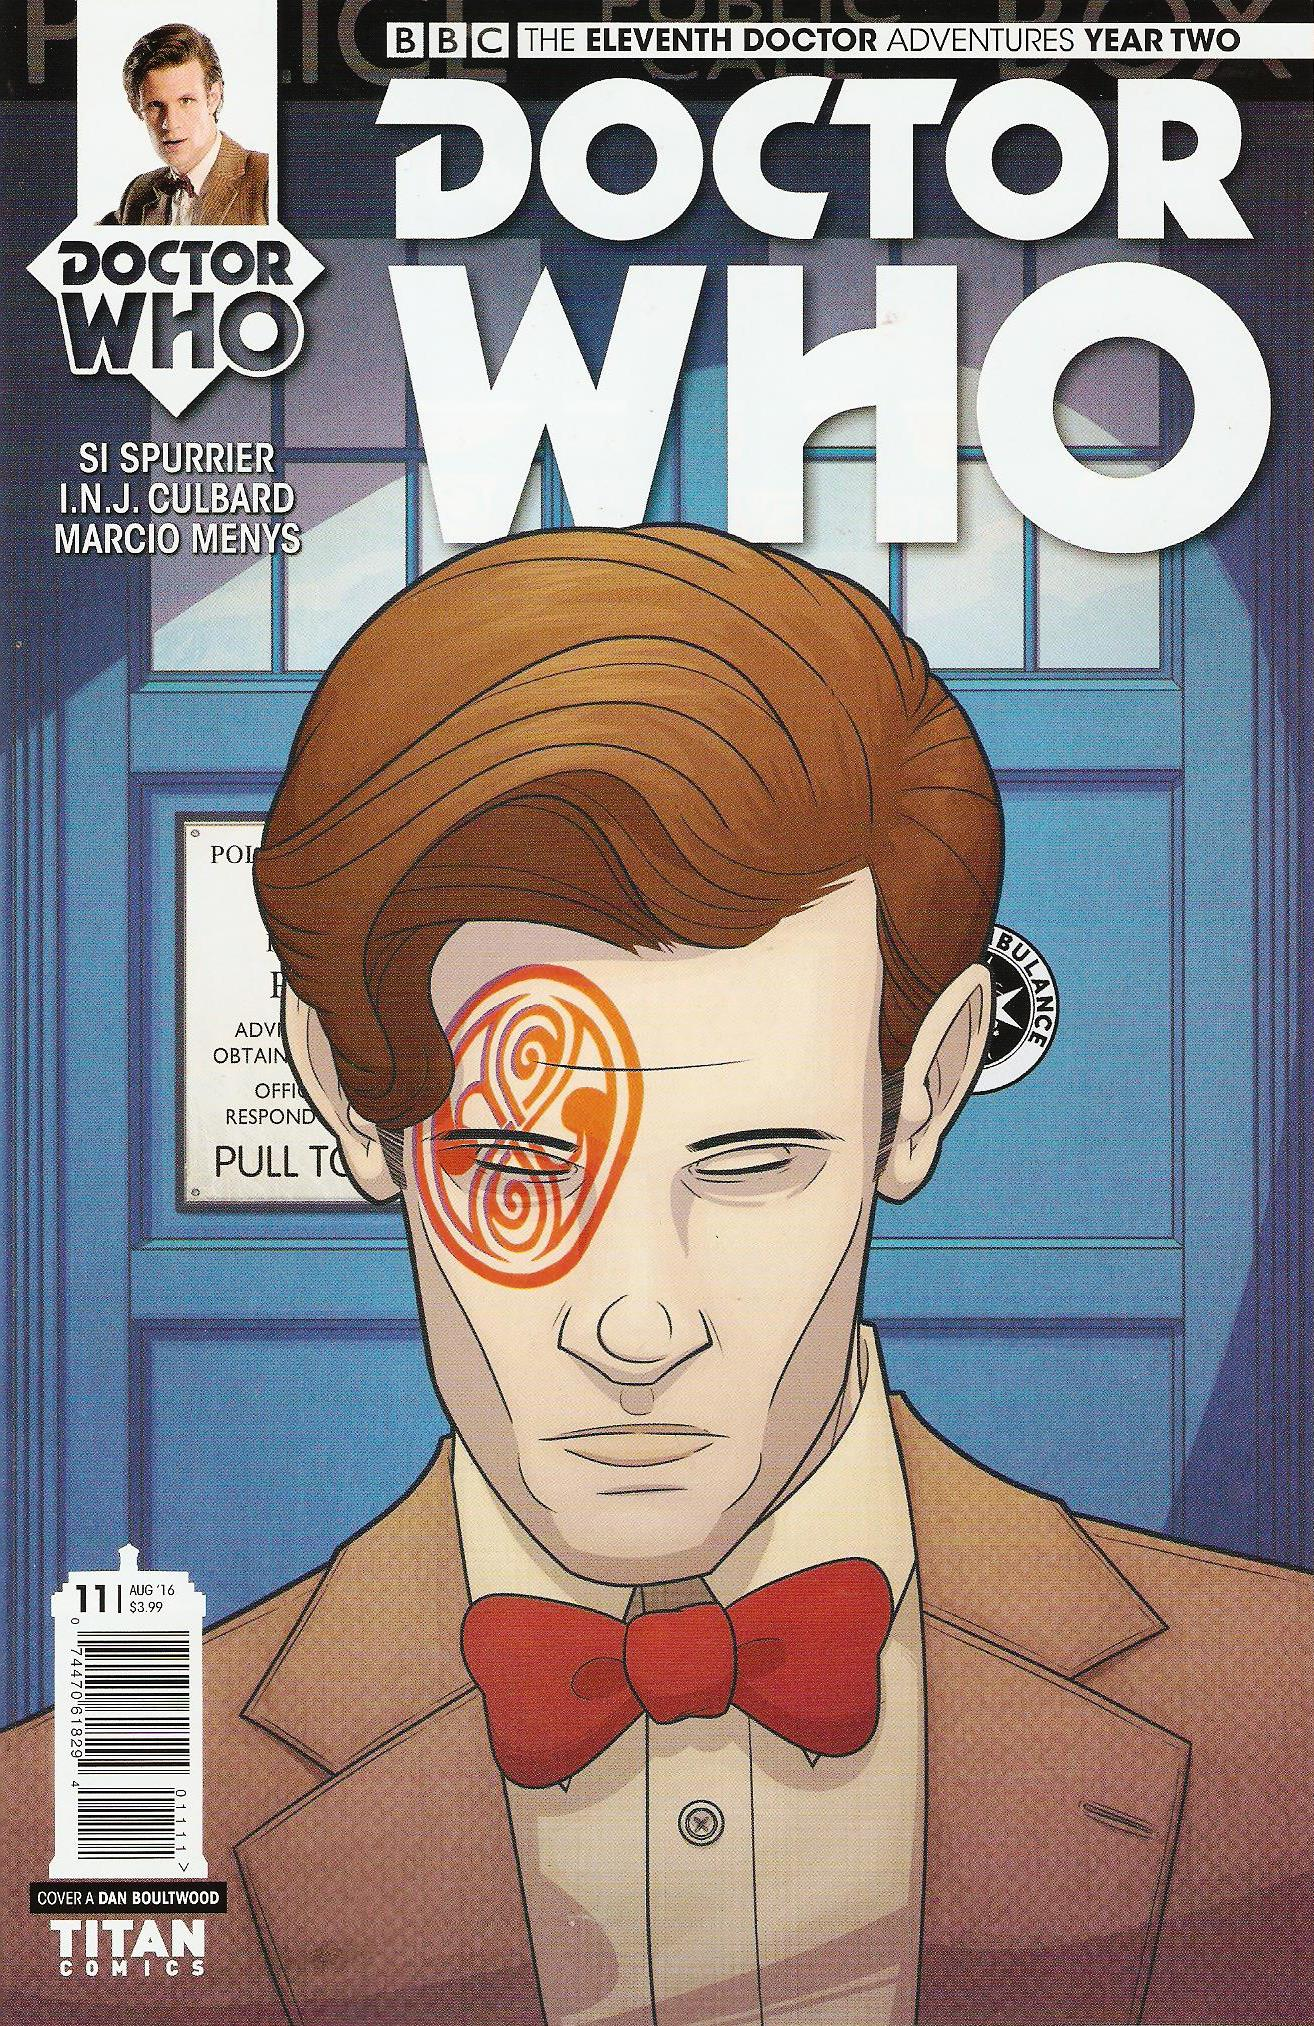 Eleventh doctor year 2 issue 11a